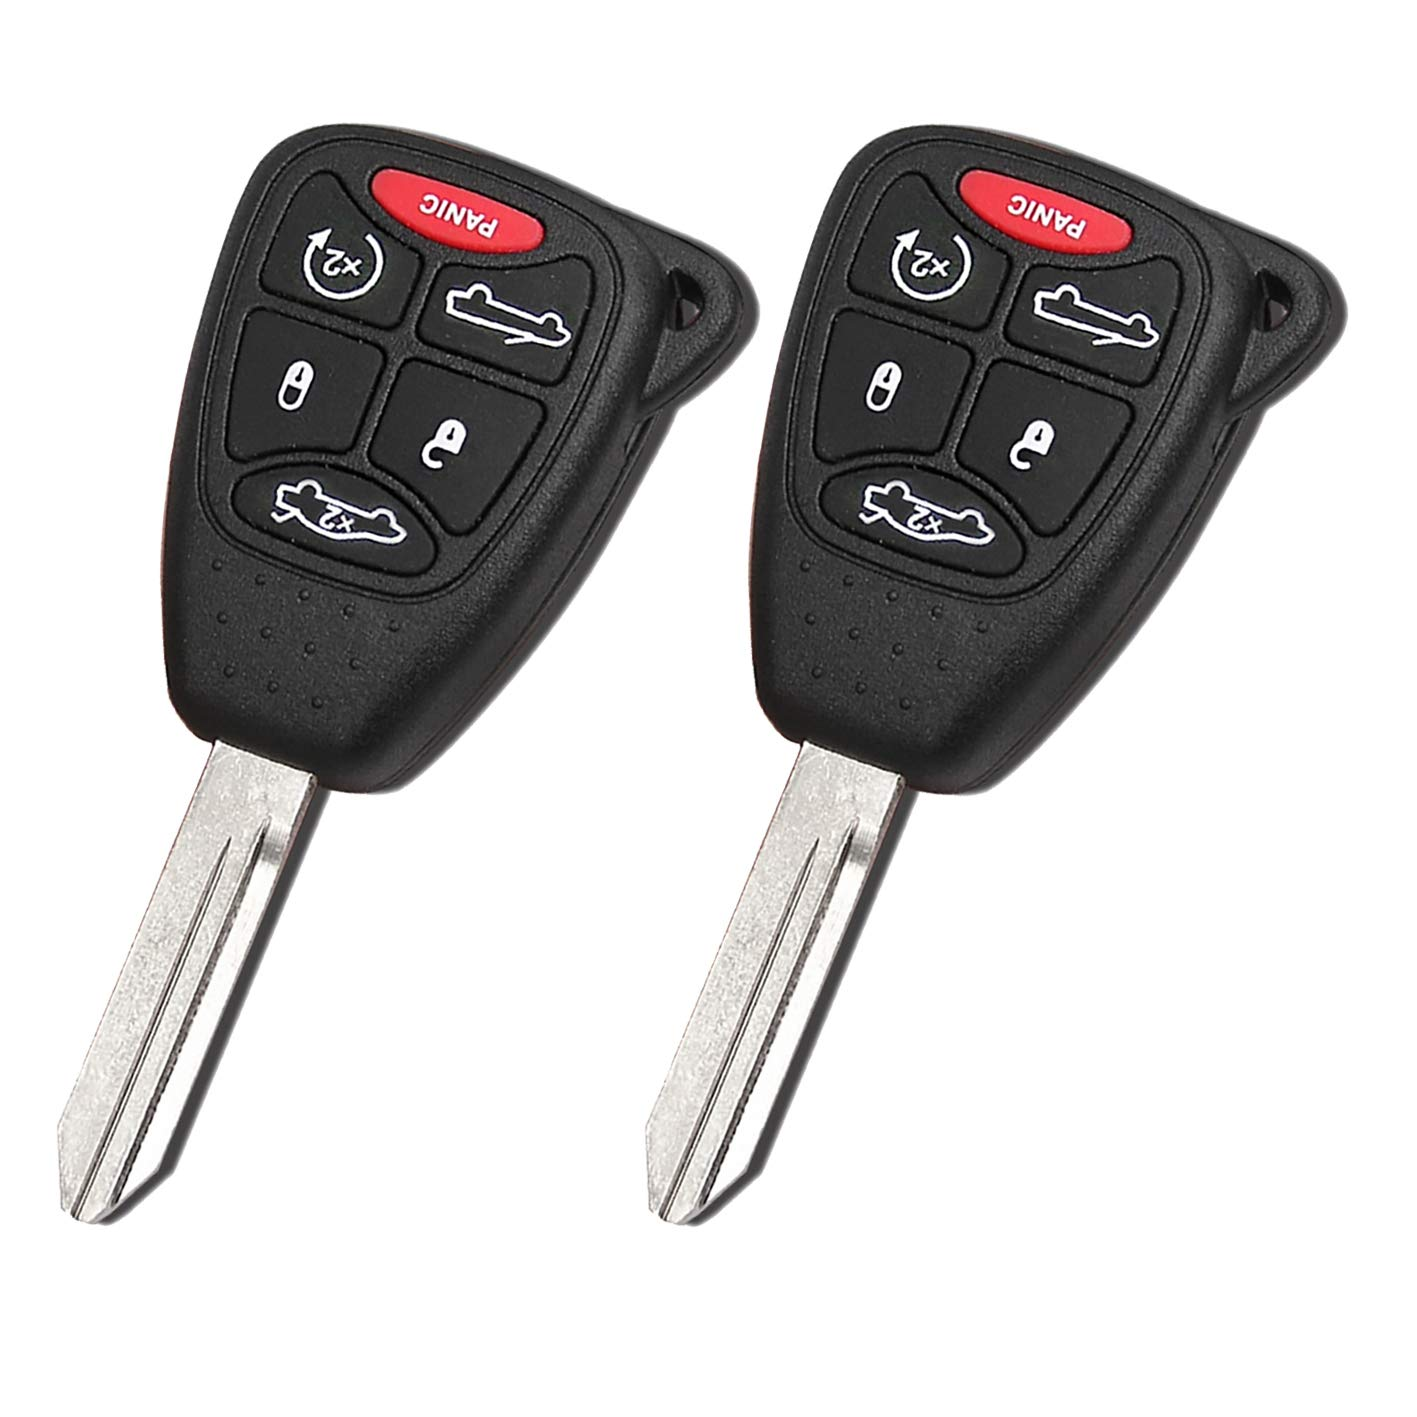 for Chrysler Sebring Convertible 200 Convertible 4 Buttons 315MHZ Remote Key fob with ID46//7941A Chip from WAKFLMS Pack of 2 FCC OHT692427AA